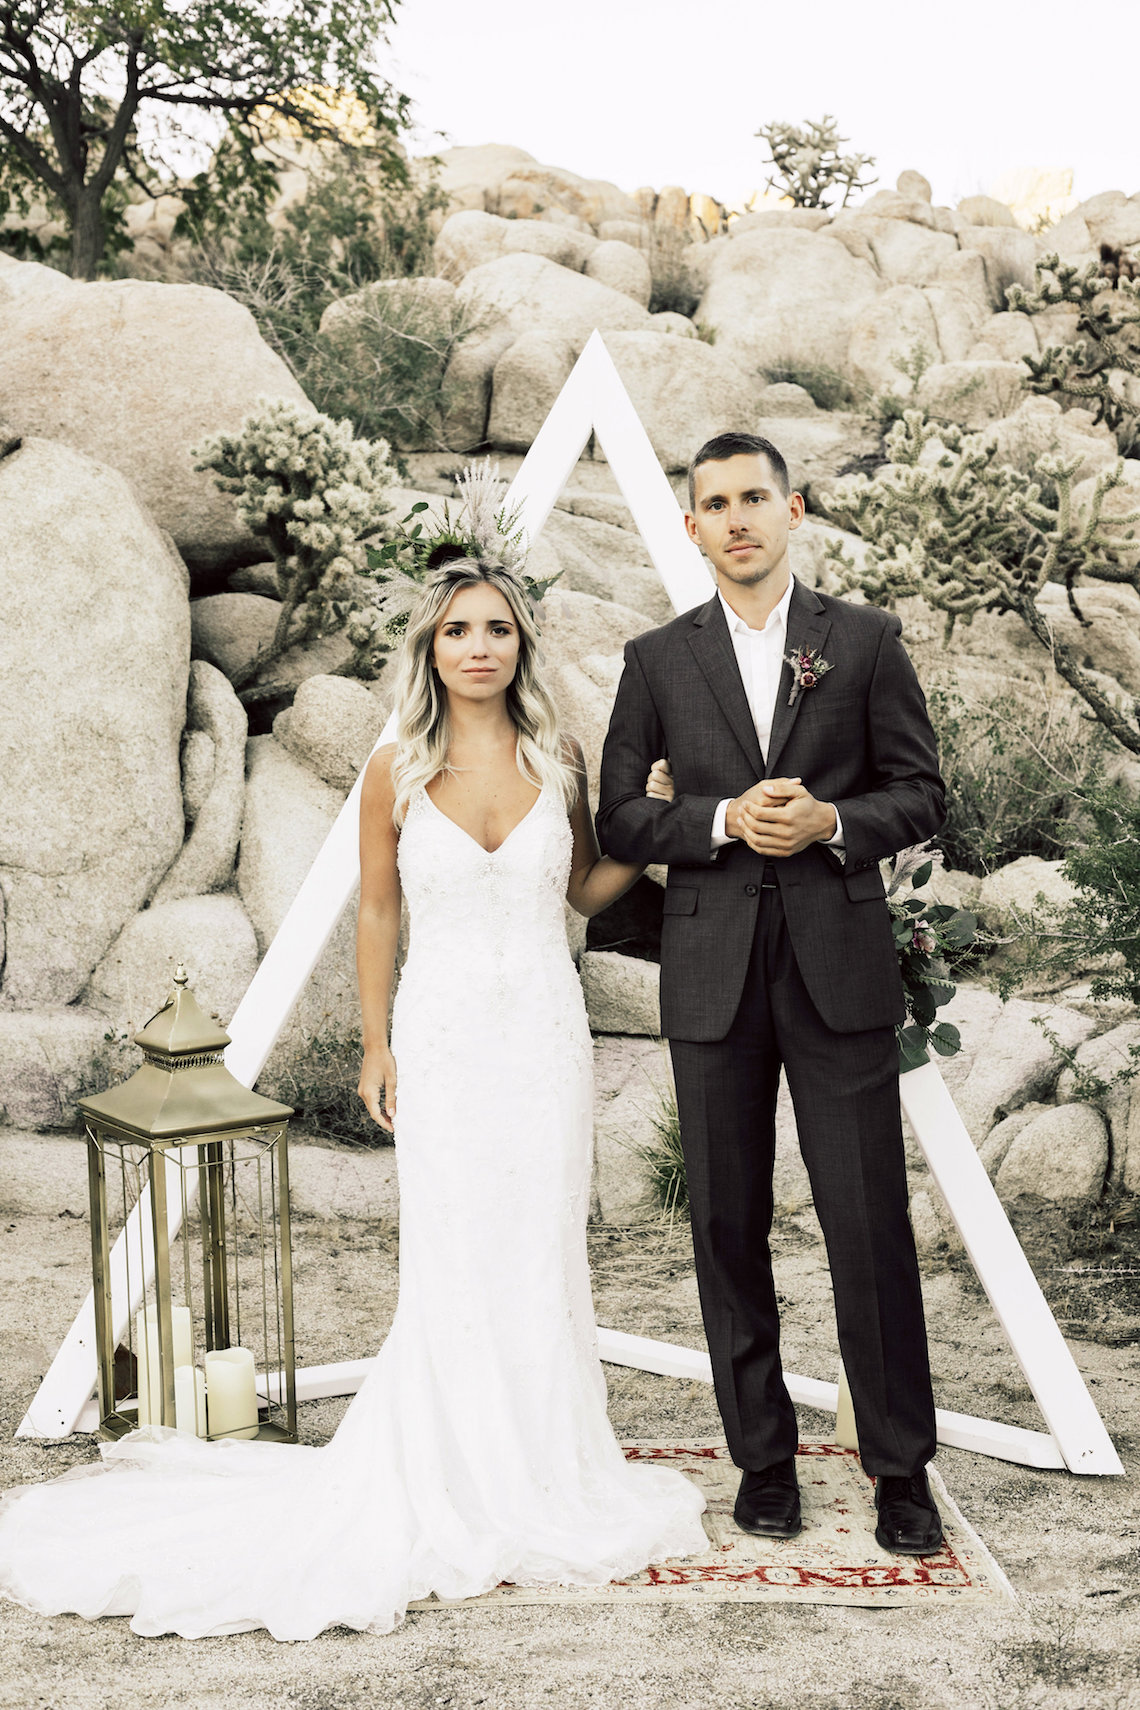 Boho Chic Elopement Inspiration with a Cool Teepee Altar | Maya Lora Photography 20